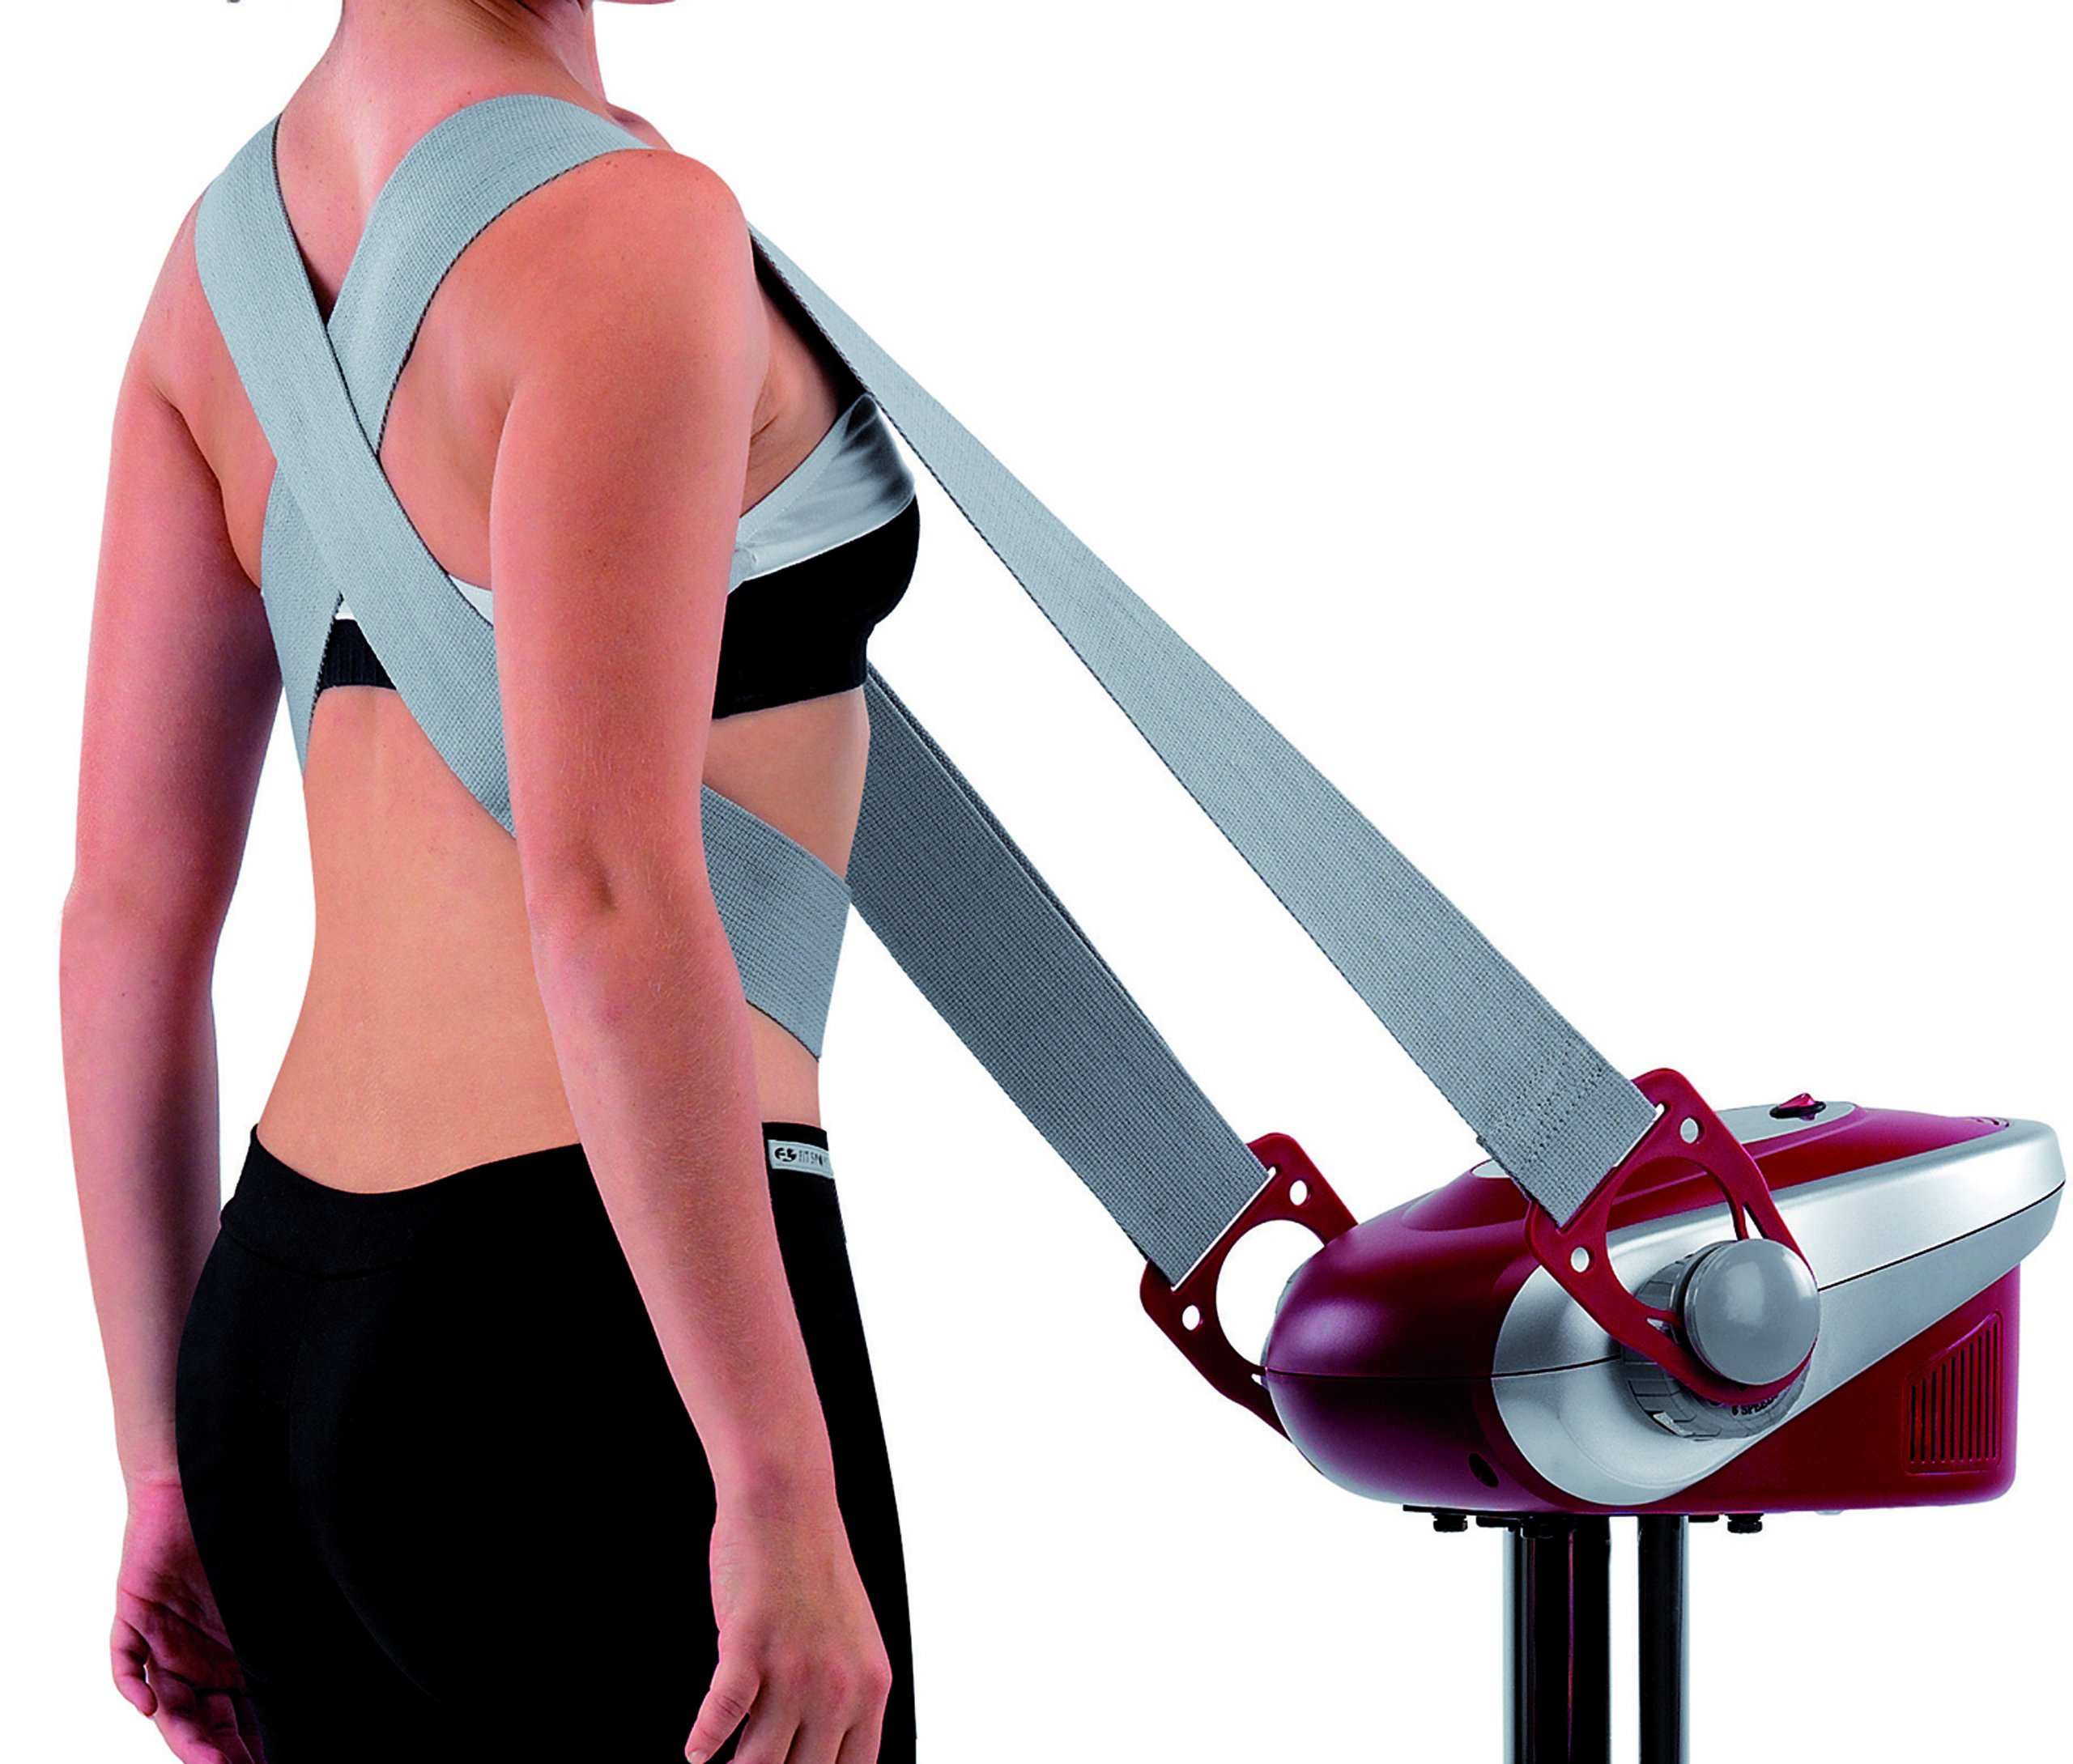 81Lh3BOsUoL - BH Fitness Tactile Tonic Pro G225 Vibration belt massage machine. Relax overloaded muscles and sore joints. Ultra…